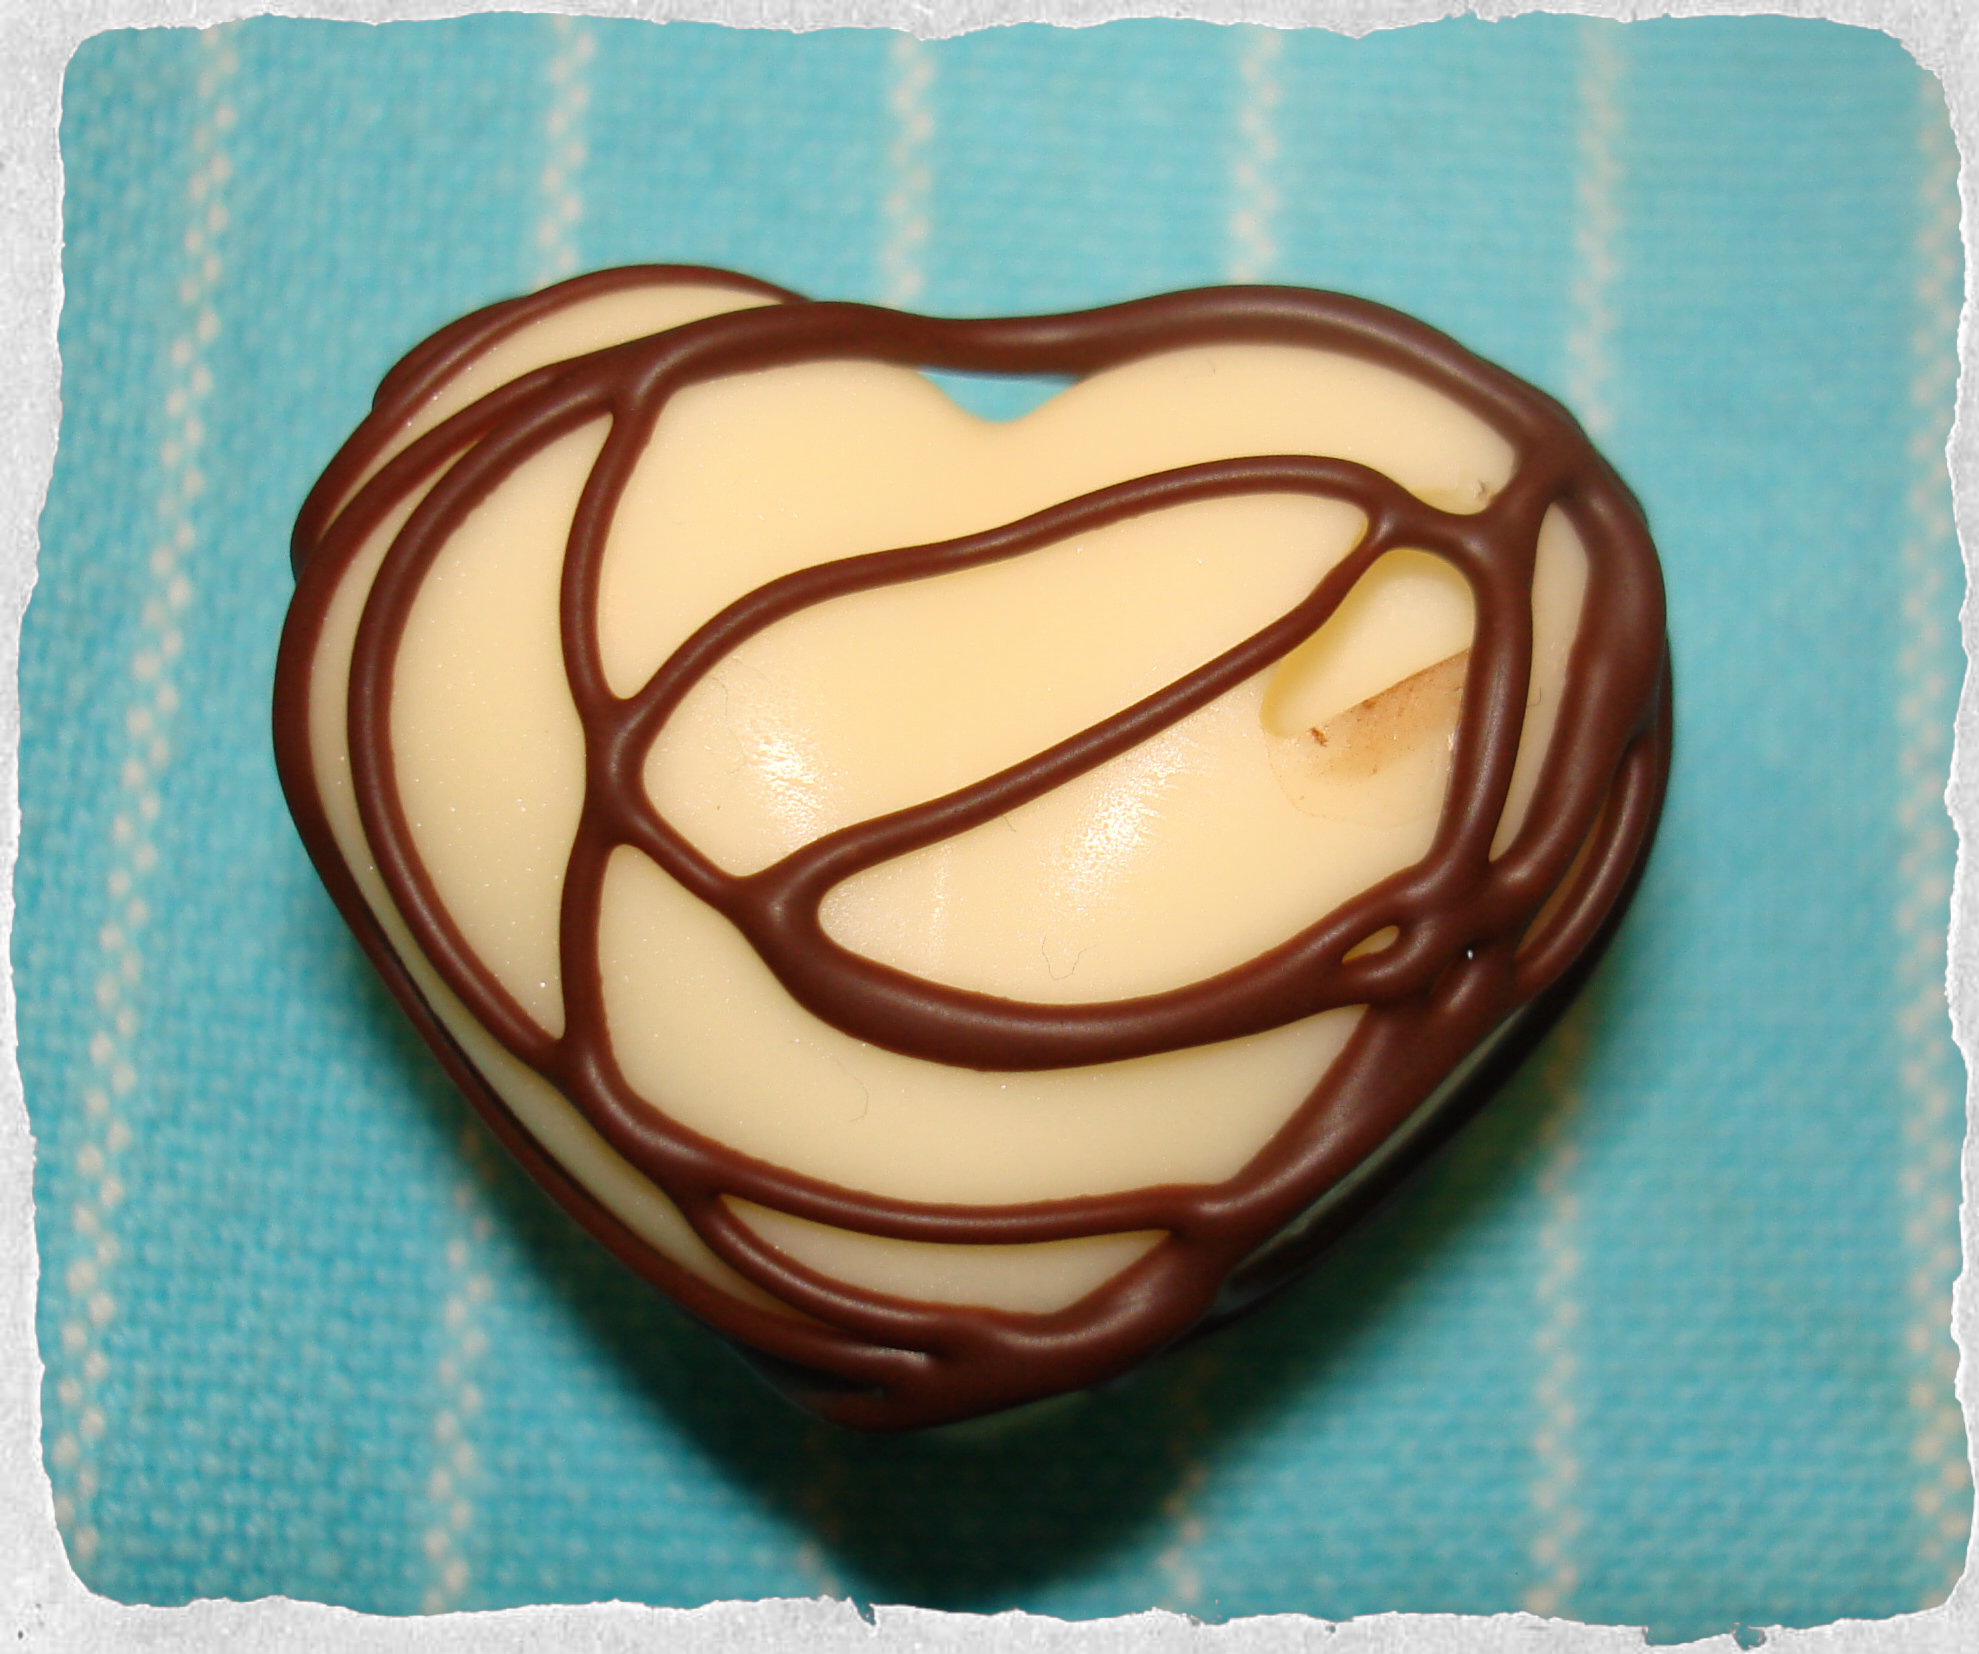 White chocolate heart, homemade